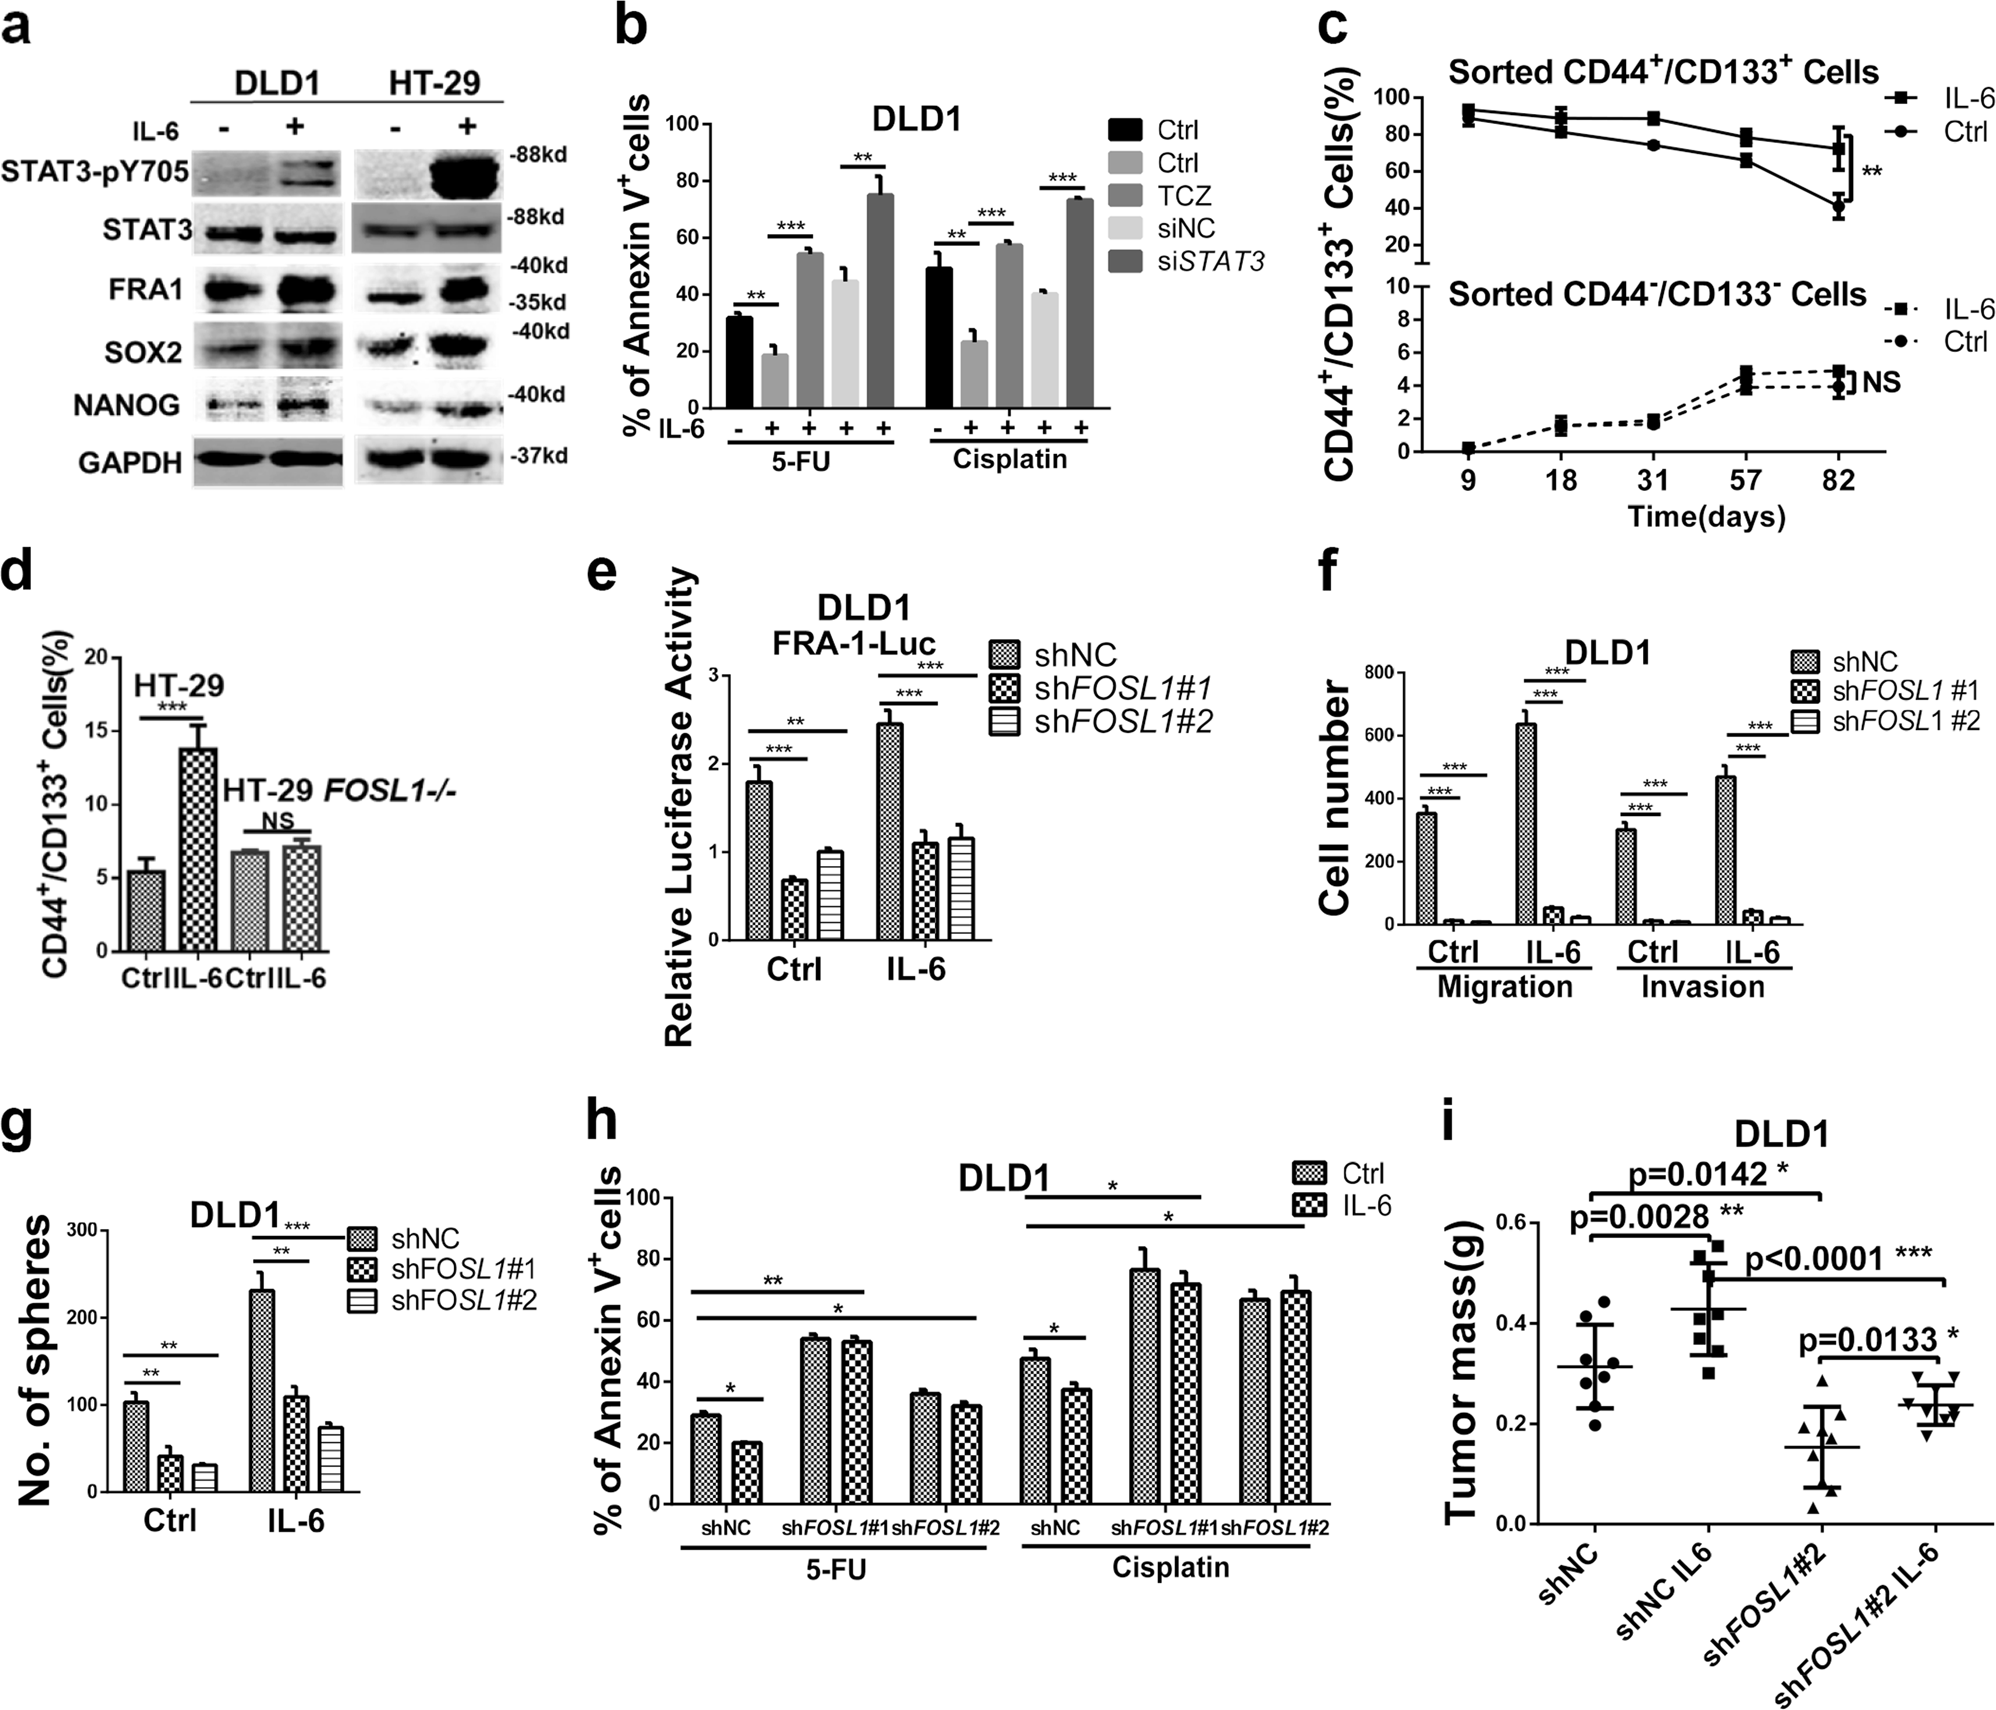 The inflammatory cytokine IL-6 induces FRA1 deacetylation